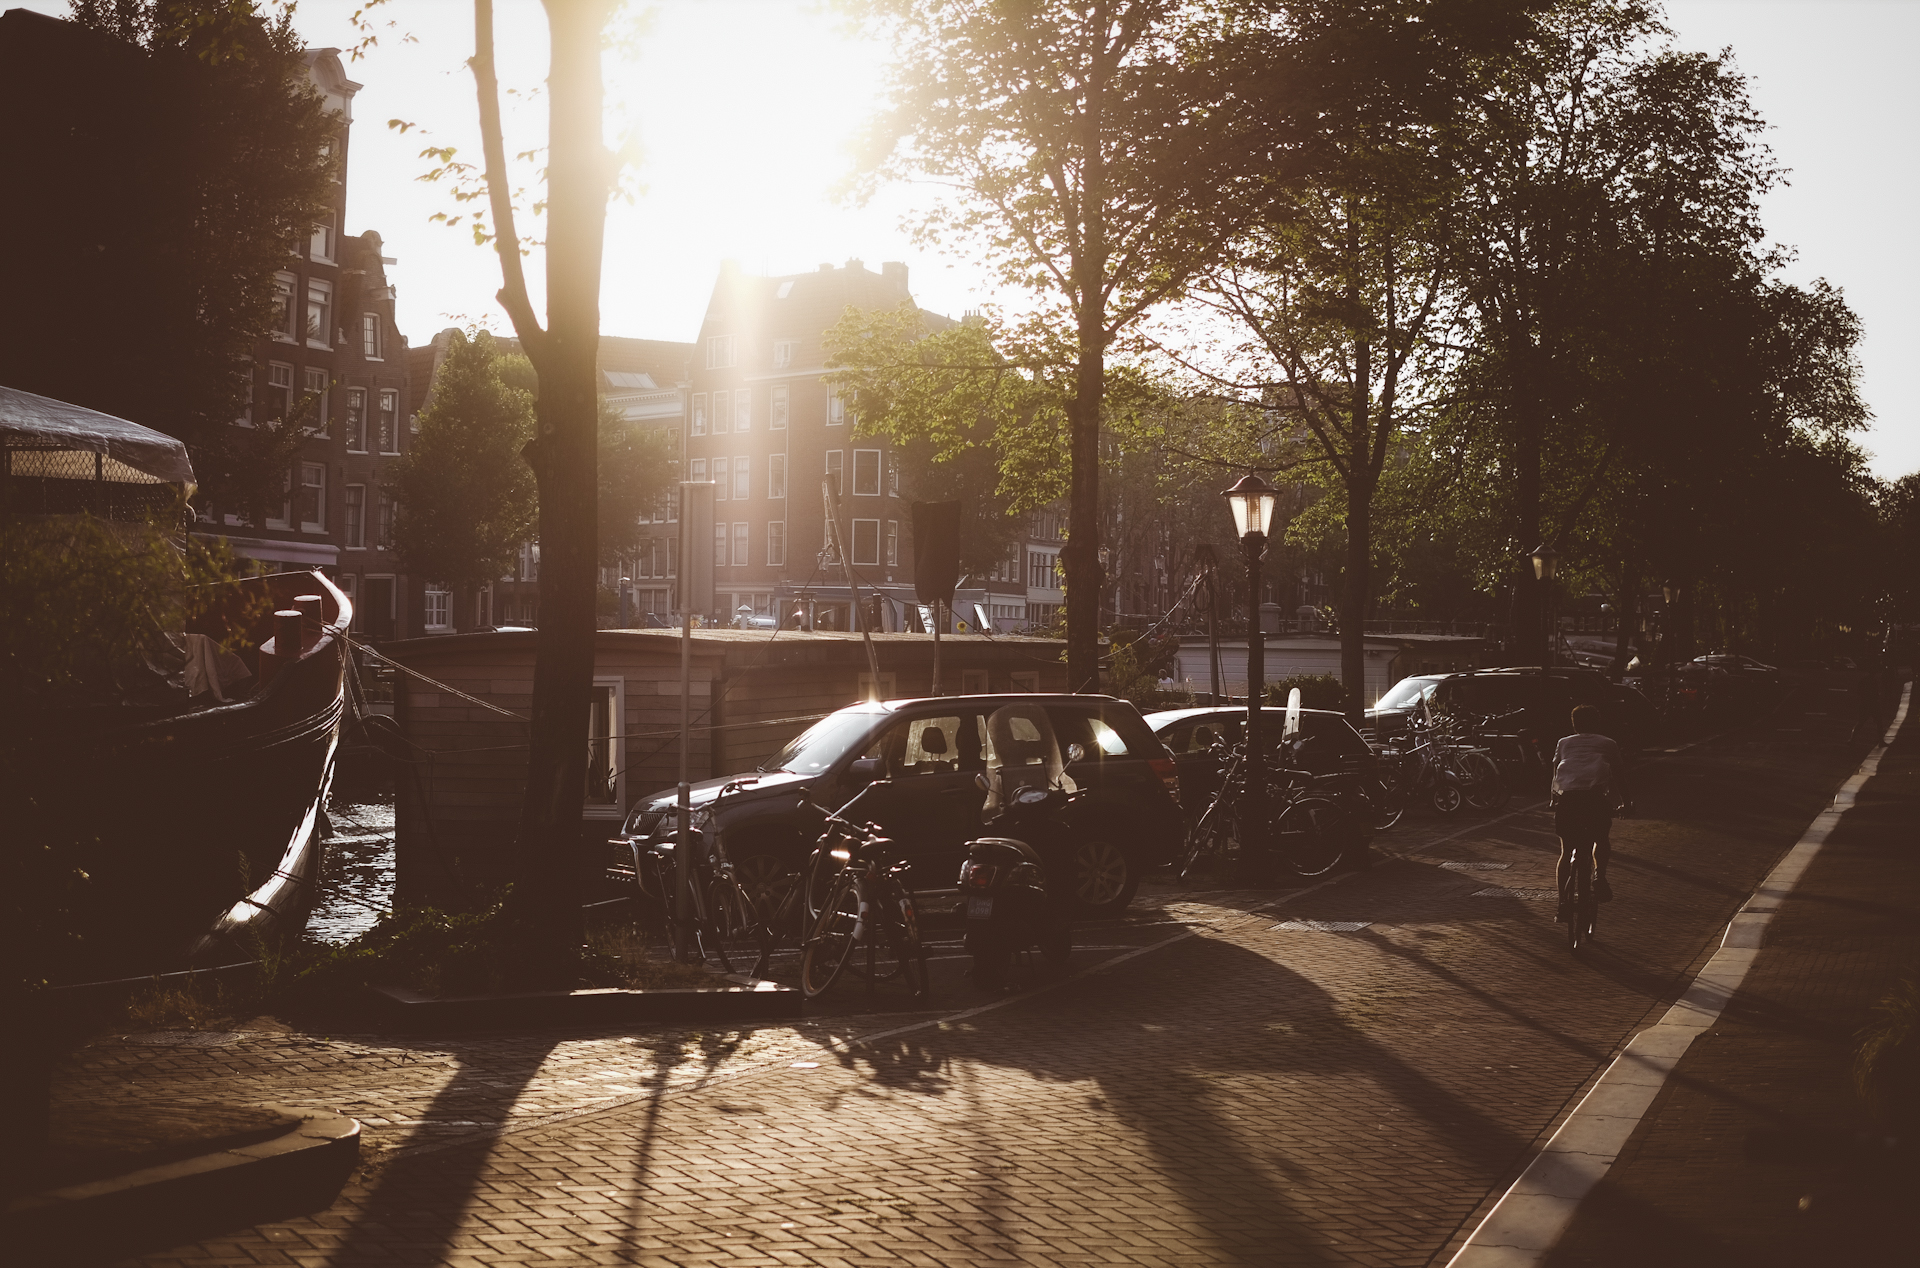 Amsterdam, Summer in the City